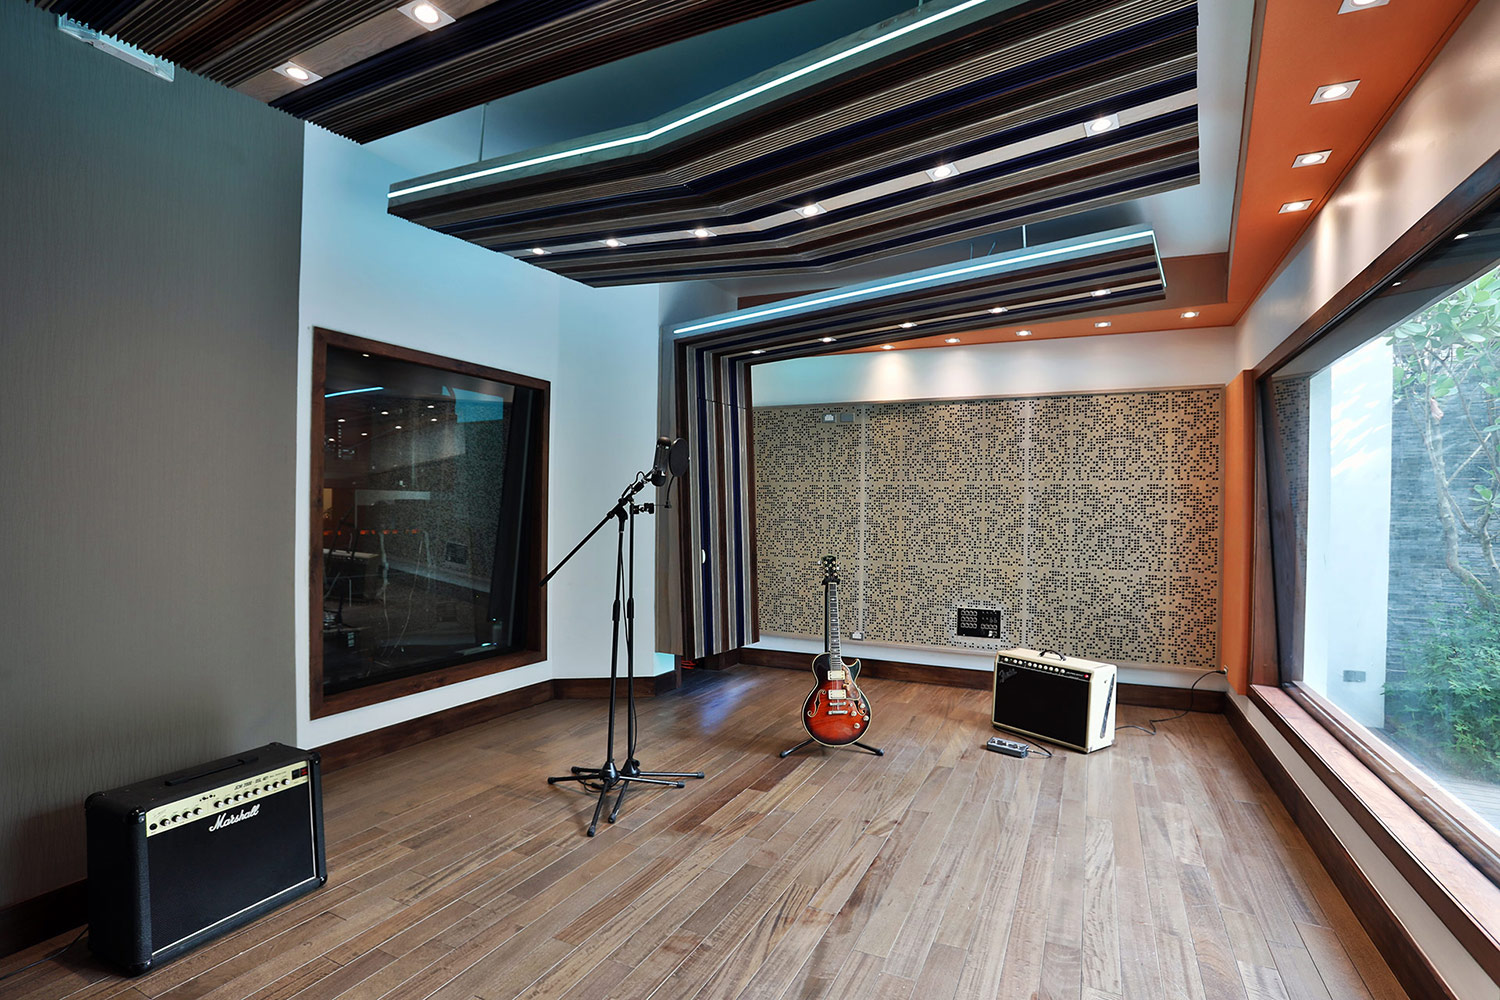 FAMA Studio owner Luis Betances retained WSDG Latin for an acoustic and aesthetic studio design to create a dream recording studio that meets his production needs in Santo Domingo, Dominican Republic. Live Room A.